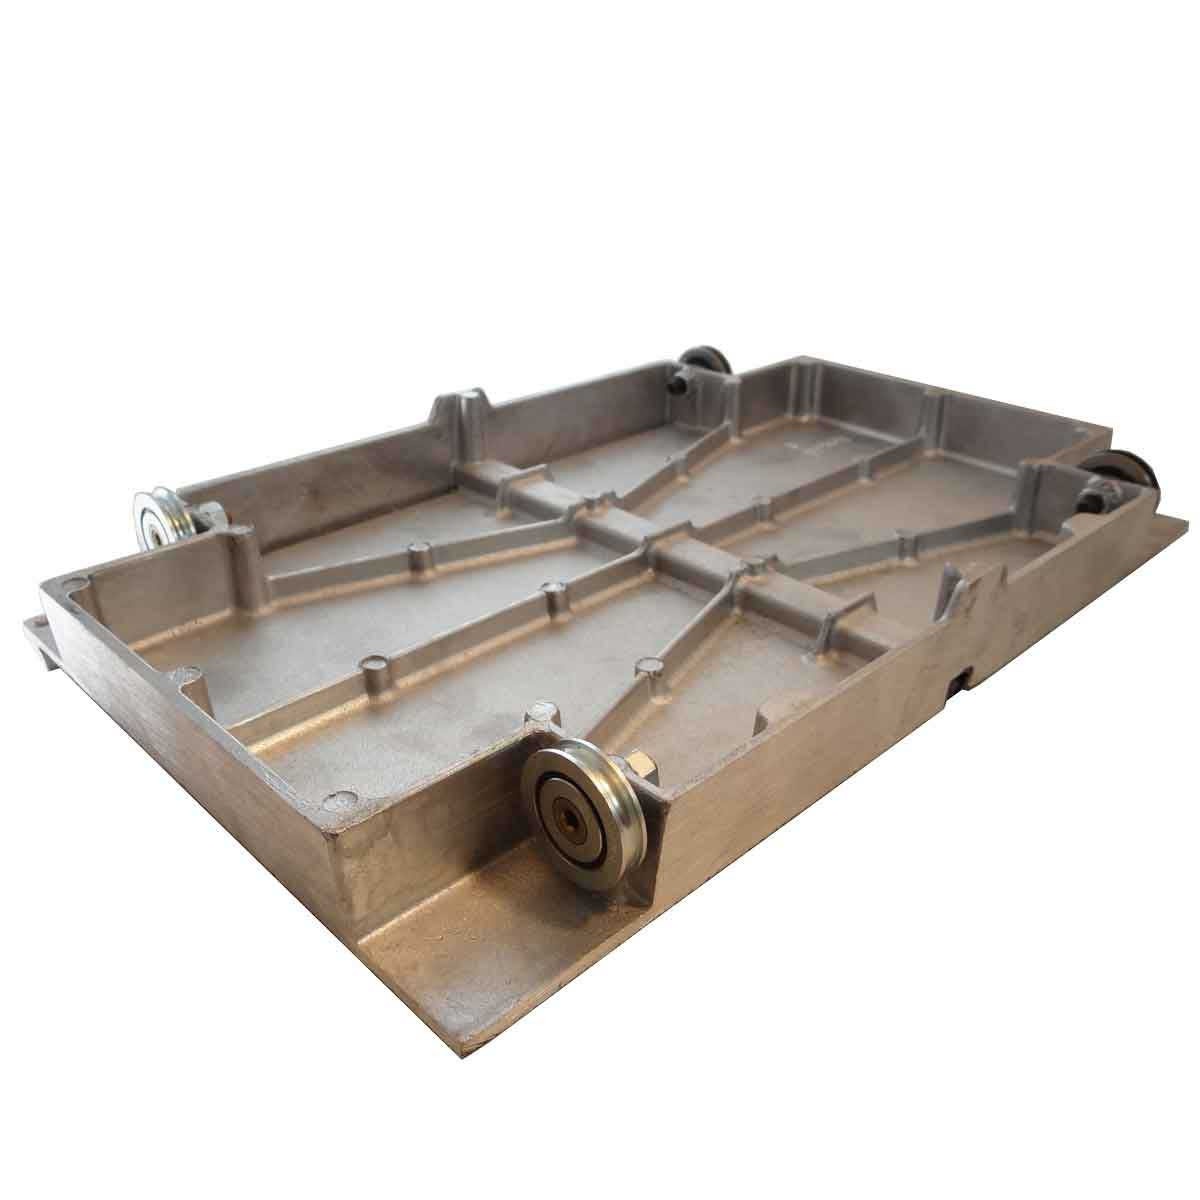 Carriage Tray for Husqvarna, Target & Felker Tile Saws underside